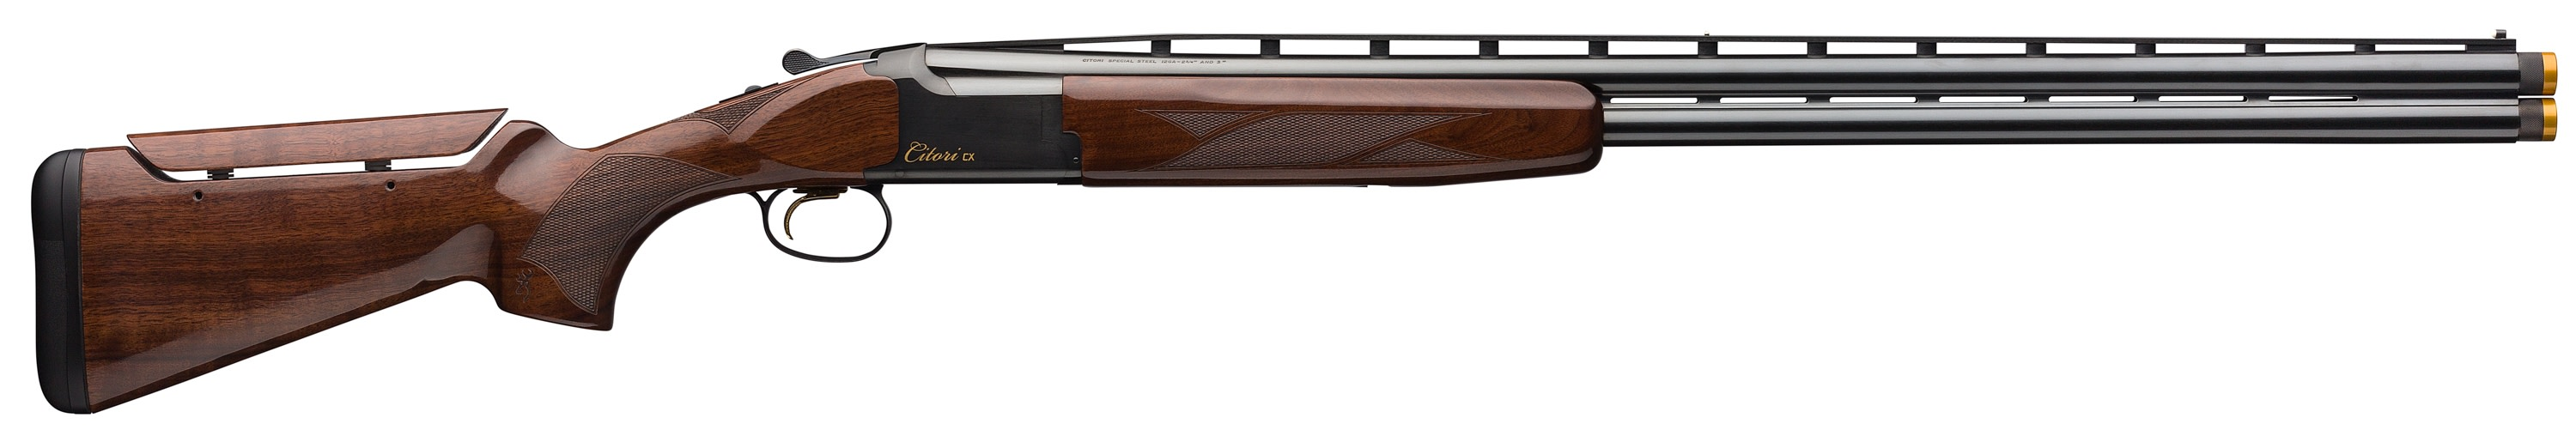 Browning Citori CX Over/Under 3'' 12 Gauge 30'' Blued Steel - American Walnut w/Adjustable Comb